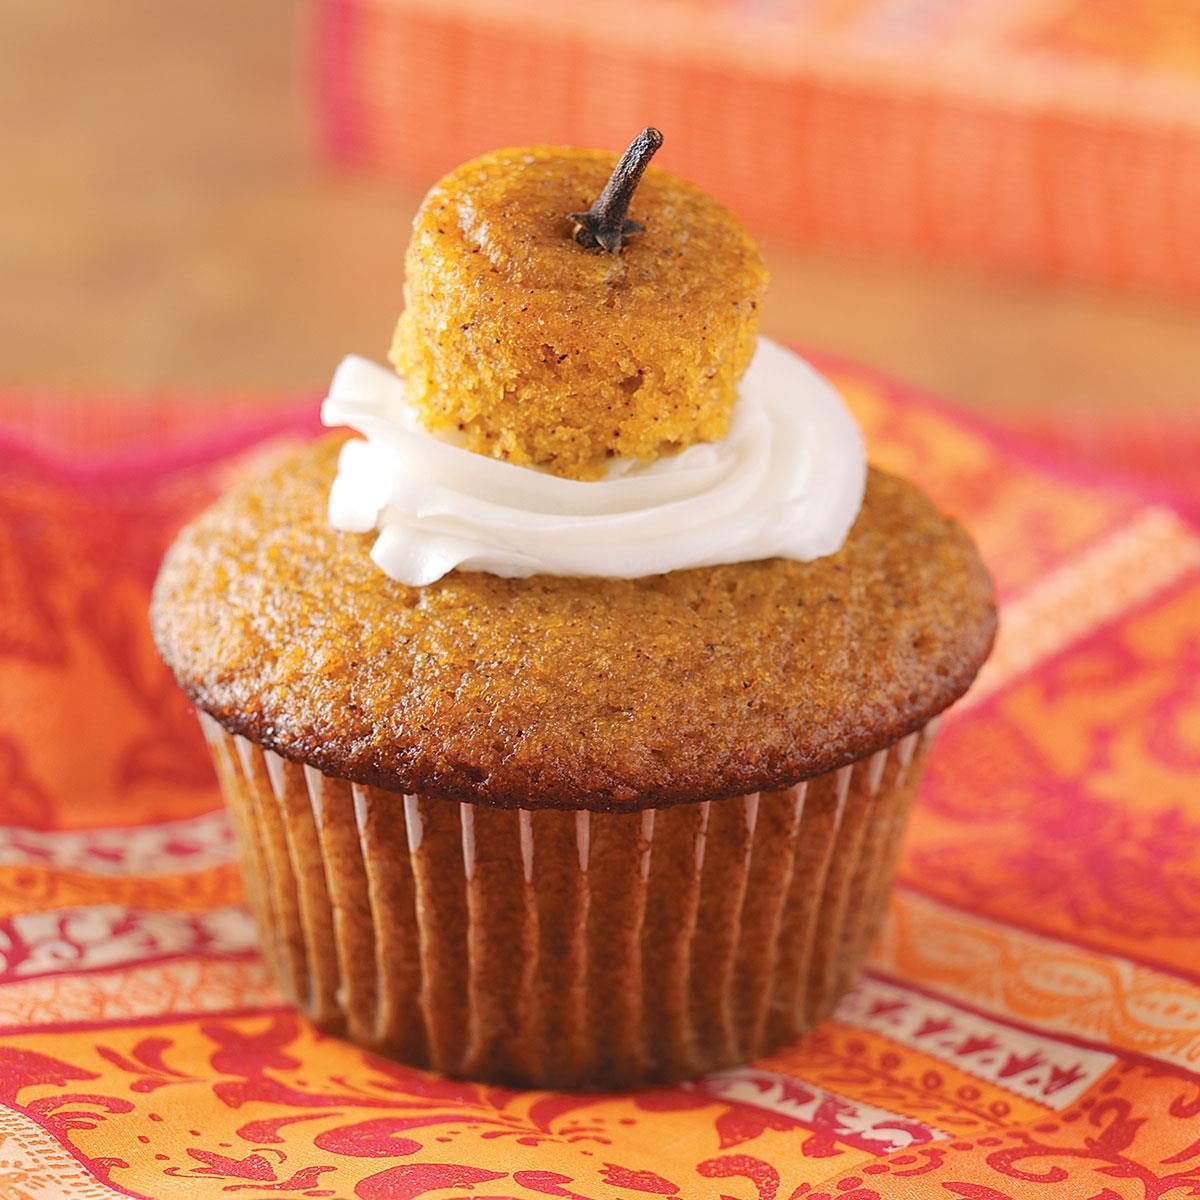 Easy cupcake filling recipes